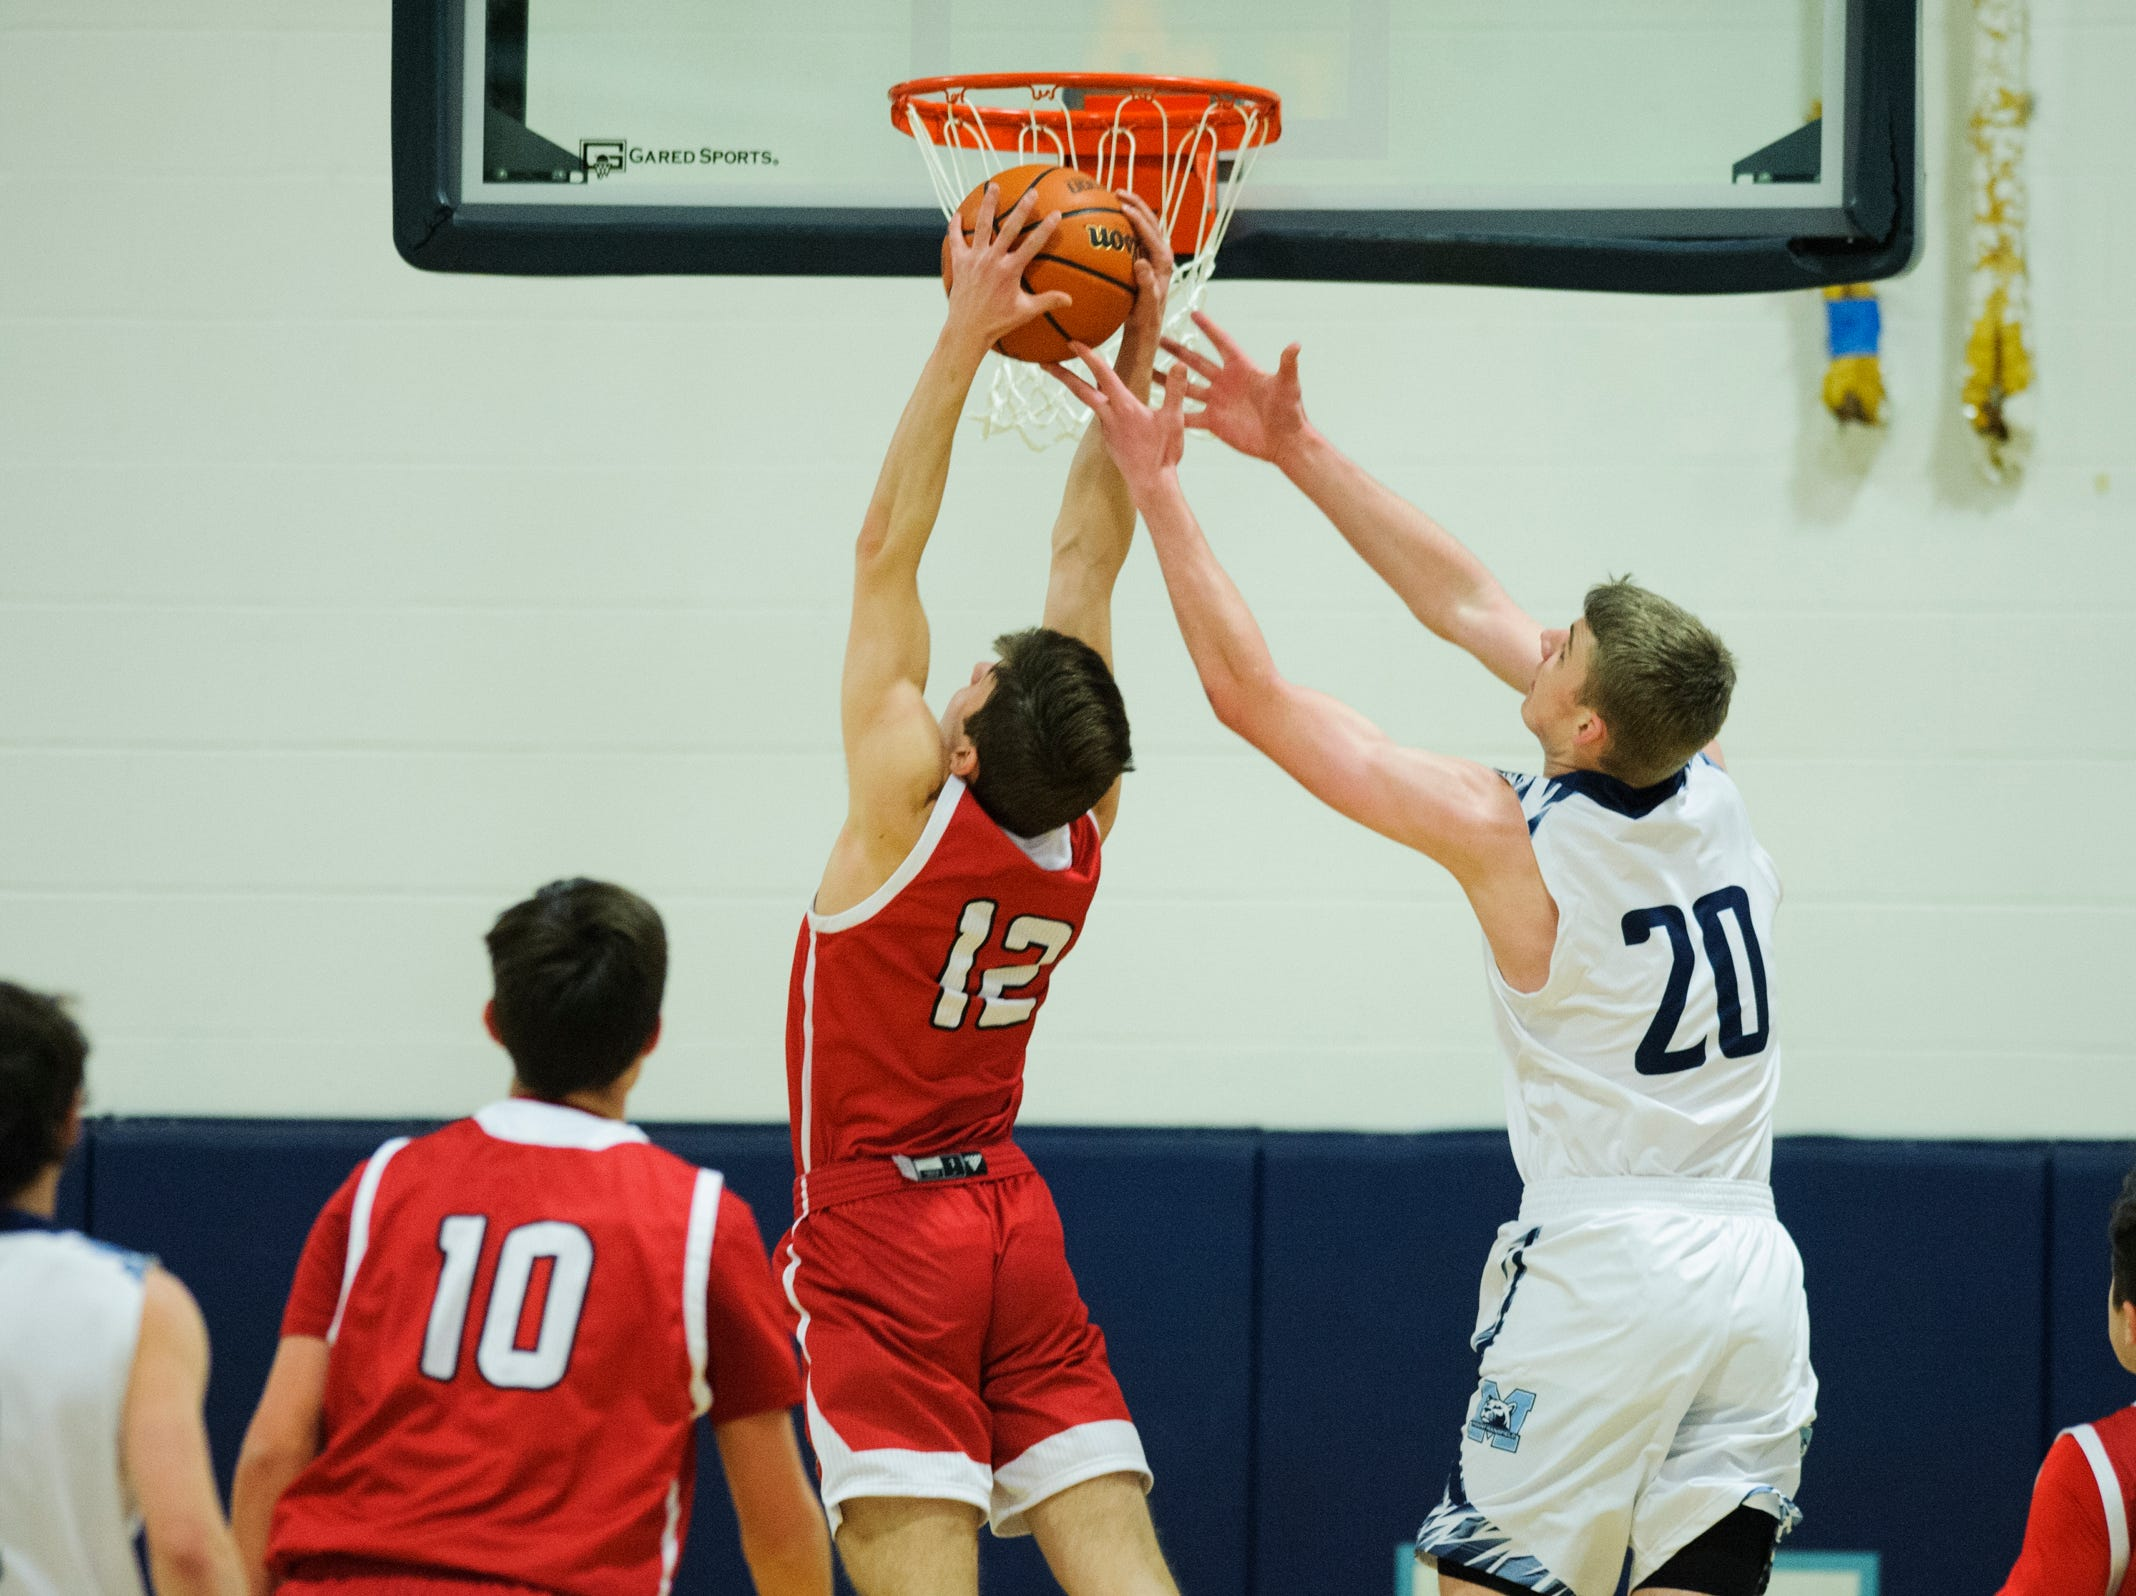 CVU's Alden Randall (12) leaps to grab the rebound from MMU's Connor Philbrick (20) during the boys basketball game between the Champlain Valley Union Redhawks and the Mount Mansfield Cougars at MMU High School on Tuesday night January 22, 2019 in Jericho.